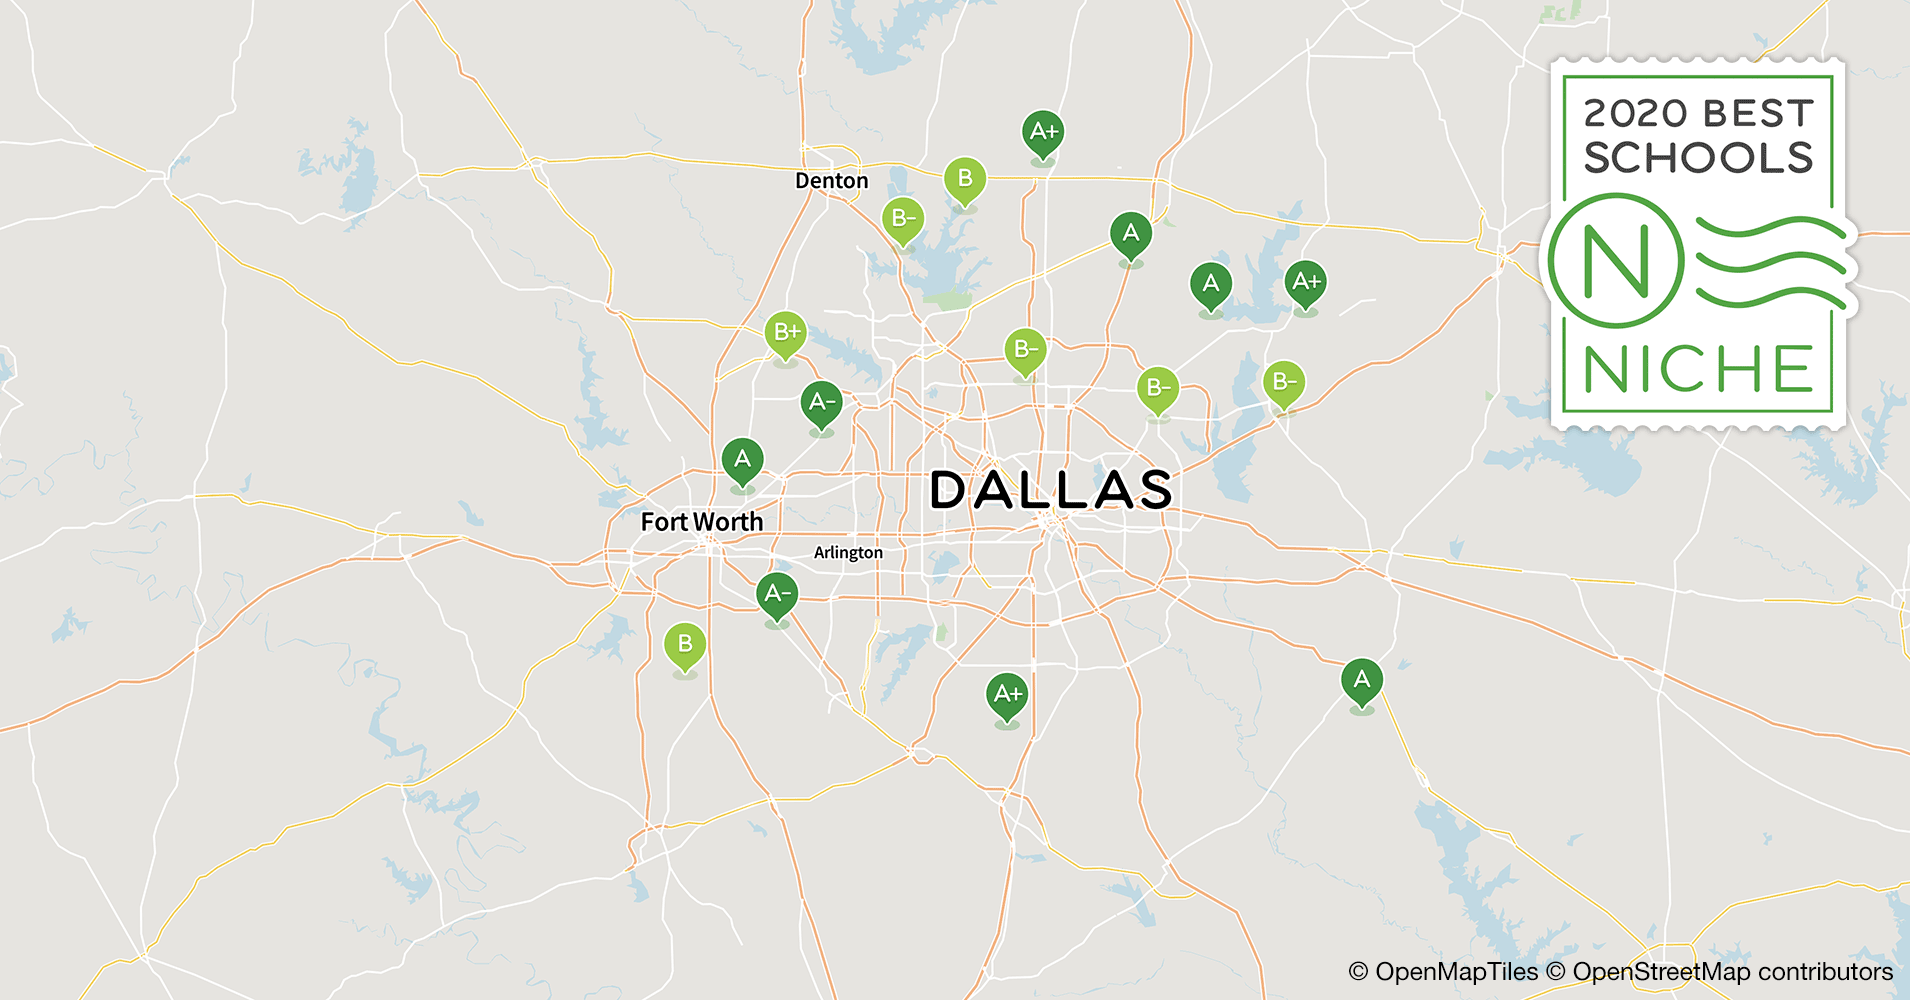 2020 Best School Districts in the Dallas-Fort Worth Area - Niche